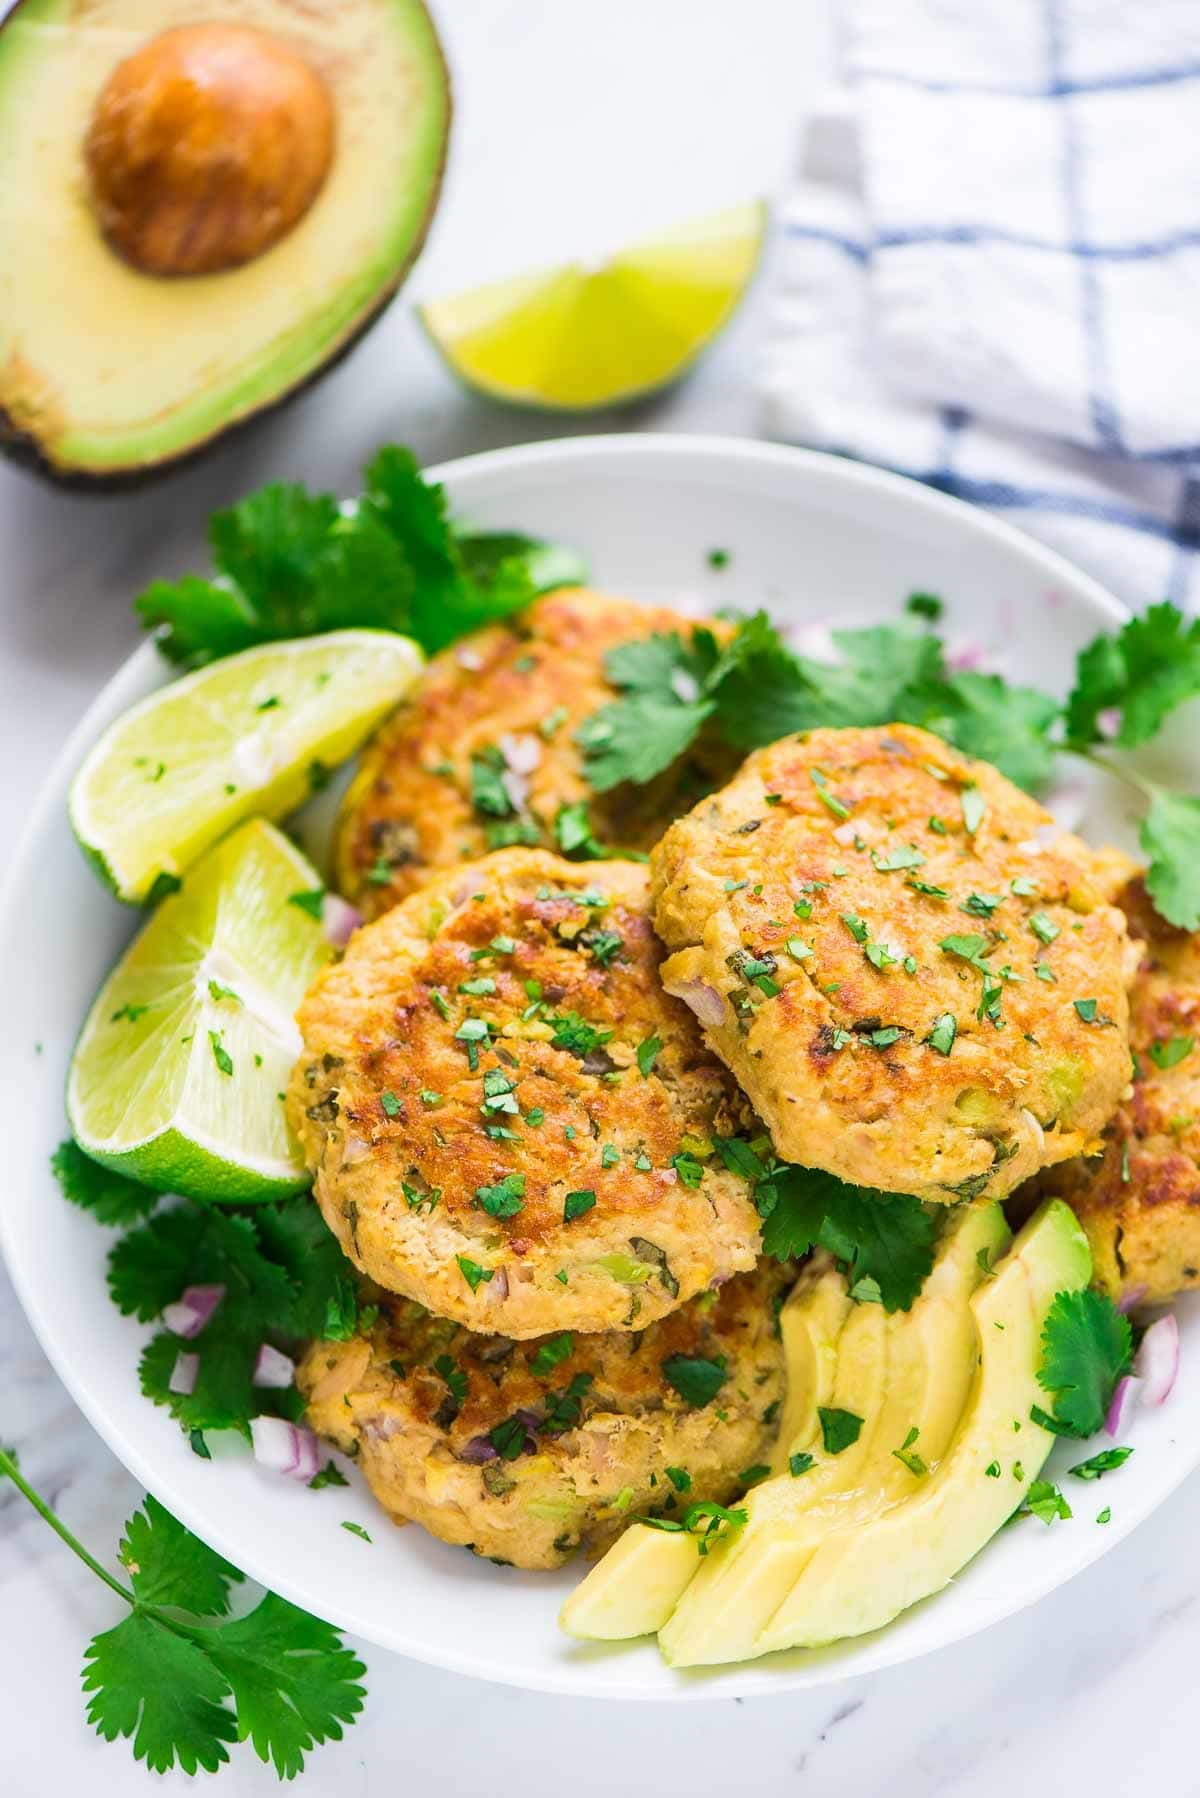 Easy Baked Avocado Tuna Cakes. Quick, healthy, and delicious! This simple, budget-friendly recipe is a family favorite. Recipe at wellplated.com | @wellplated